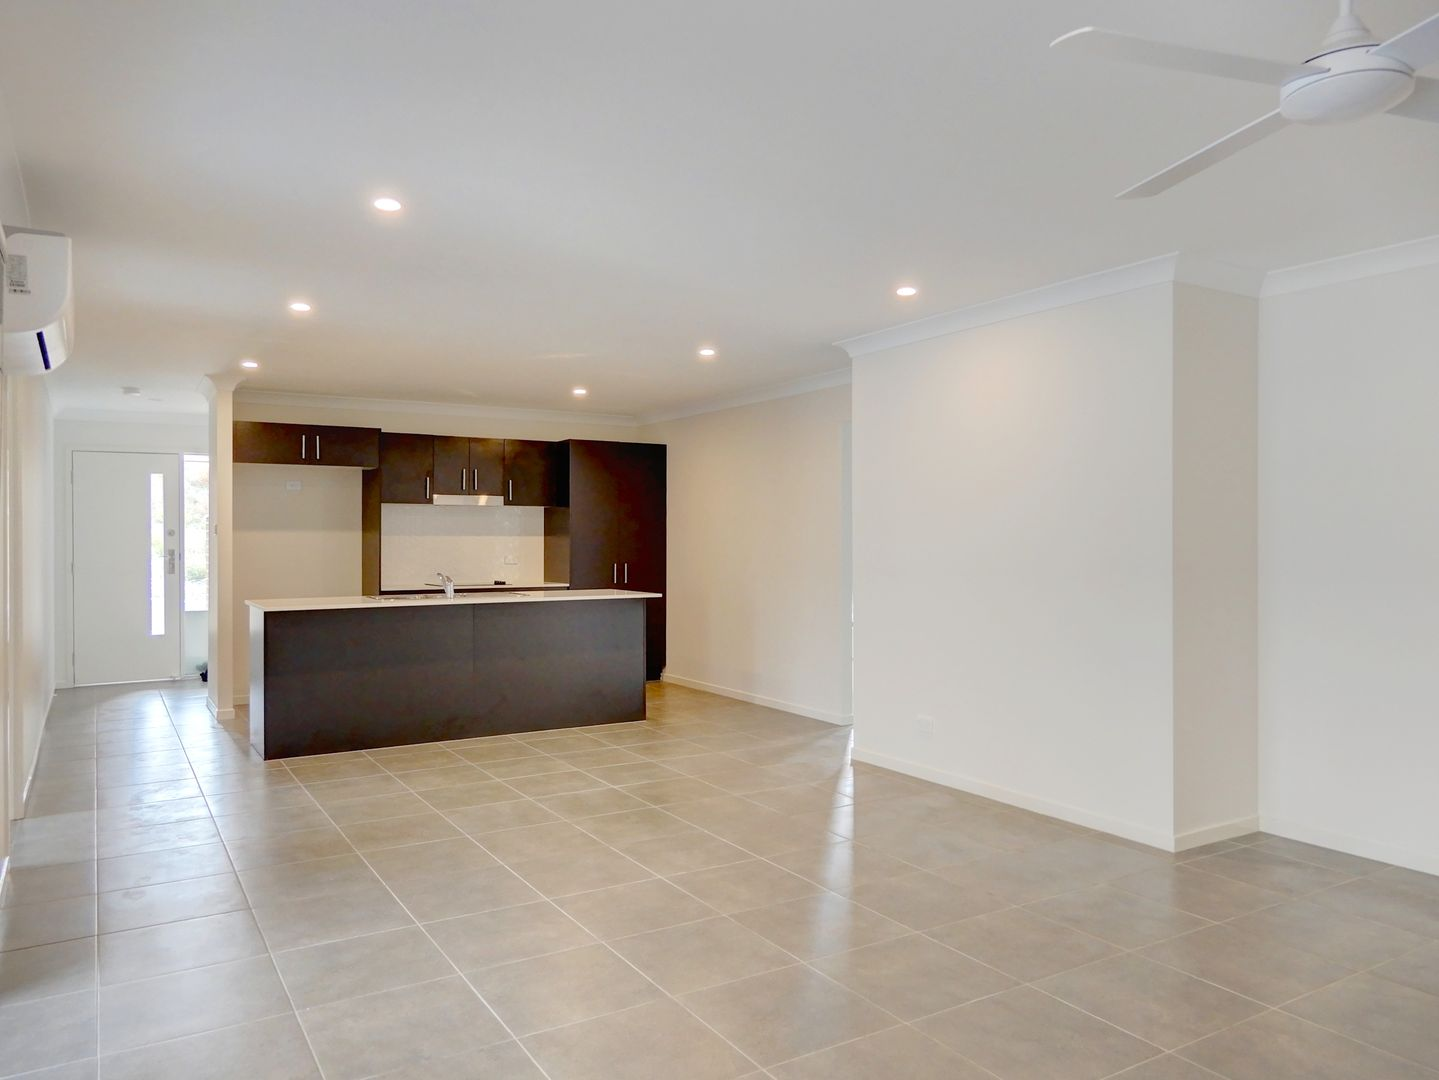 105 Norfolk St, Fern Bay NSW 2295, Image 0